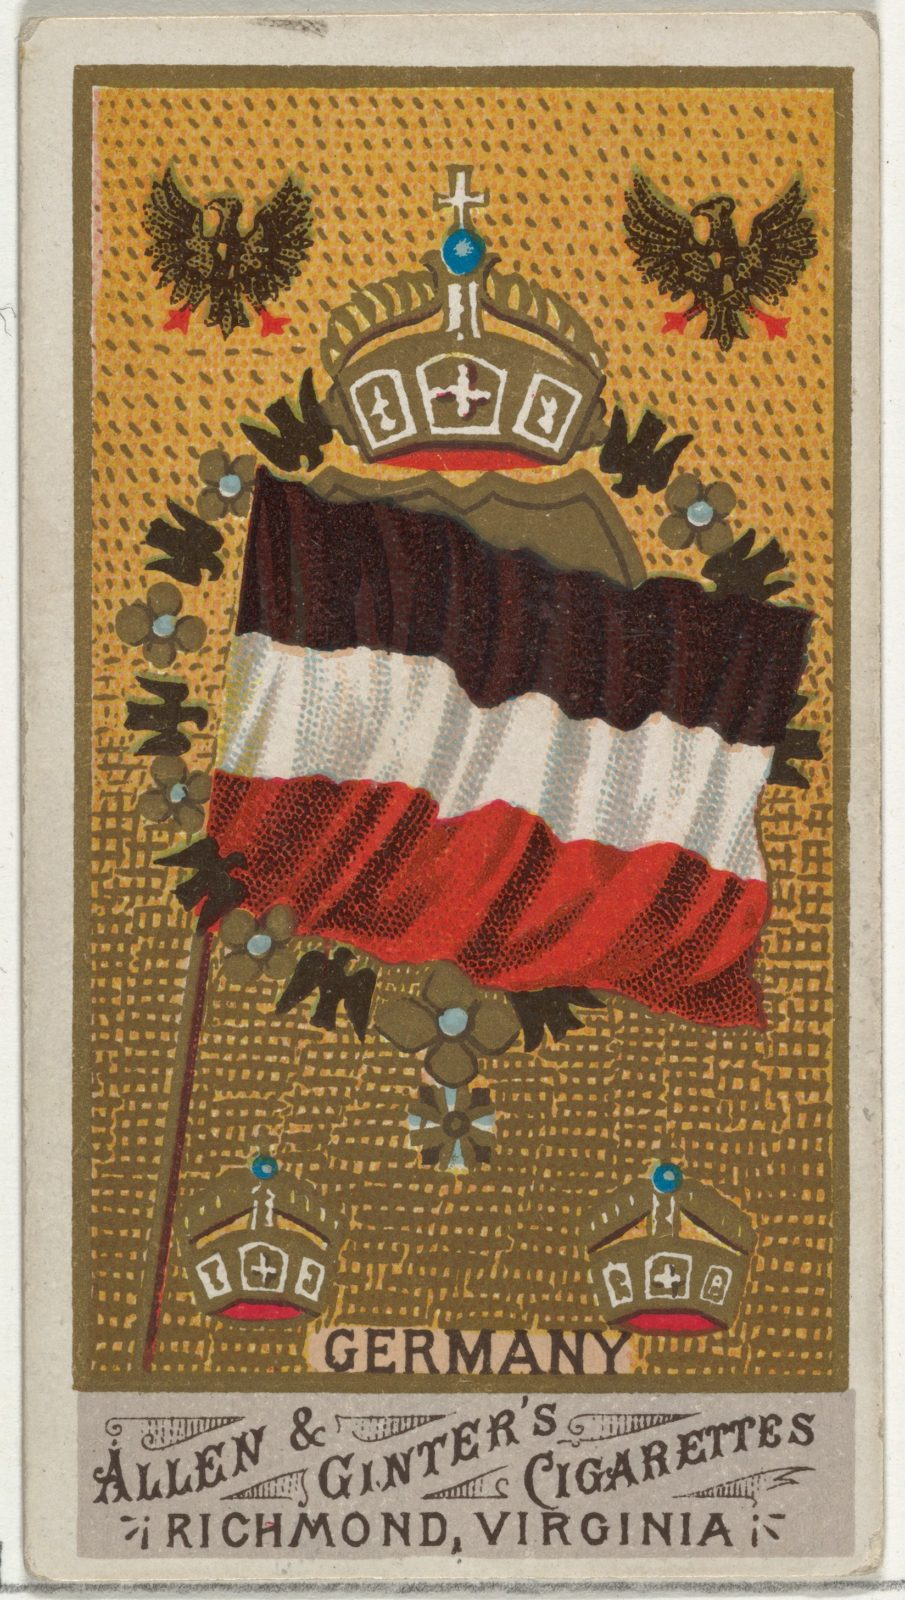 Germany, from Flags of All Nations, Series 1 (N9) for Allen & Ginter Cigarettes Brands